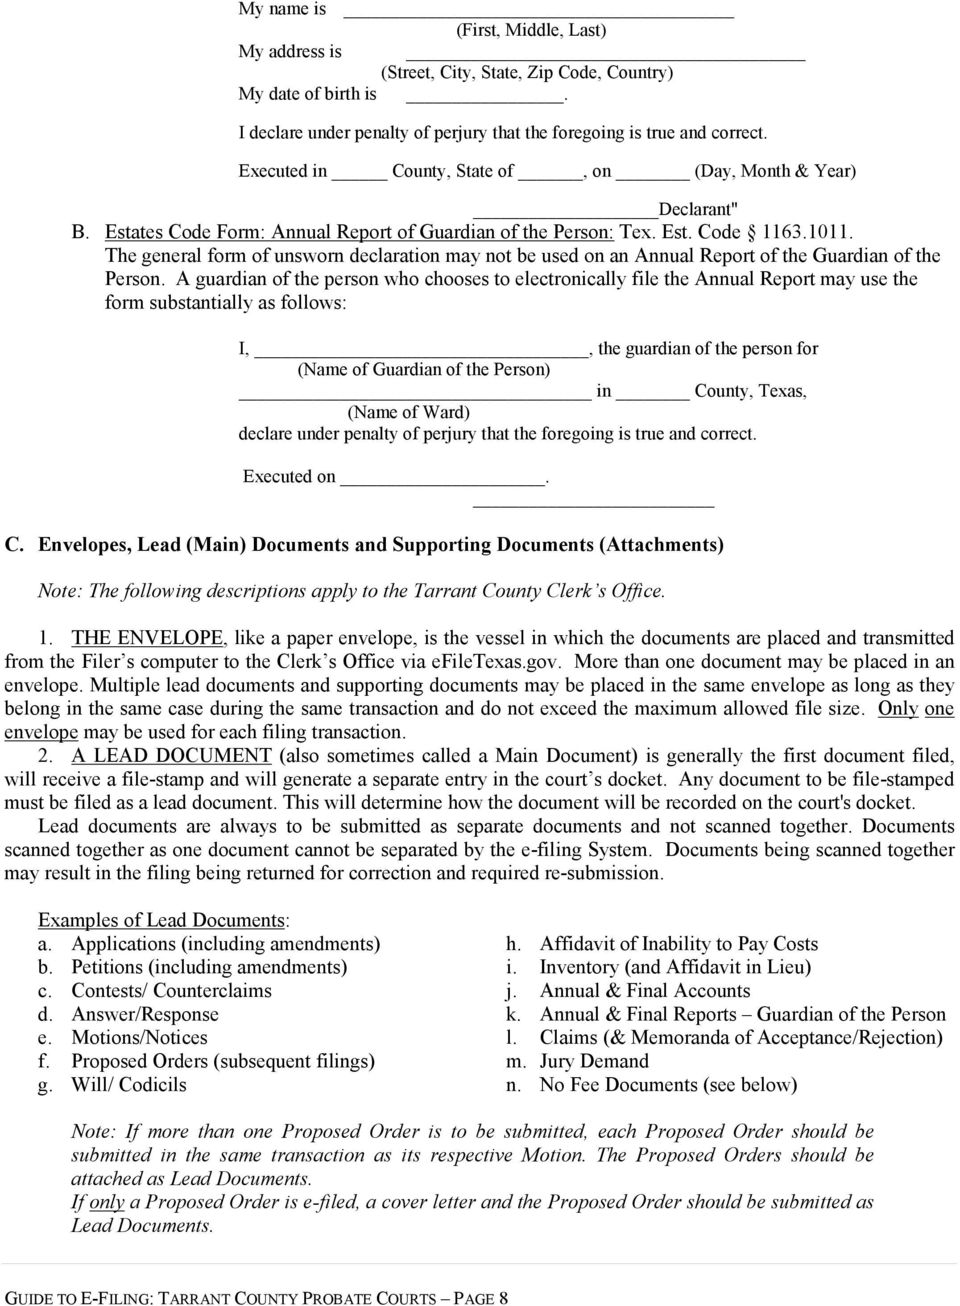 Court Rules For E Filing In The Tarrant County Probate Courts Pdf No Disassemble Short Circuit See More 3 Theguardian Com General Form Of Unsworn Declaration May Not Be Used On An Annual Report